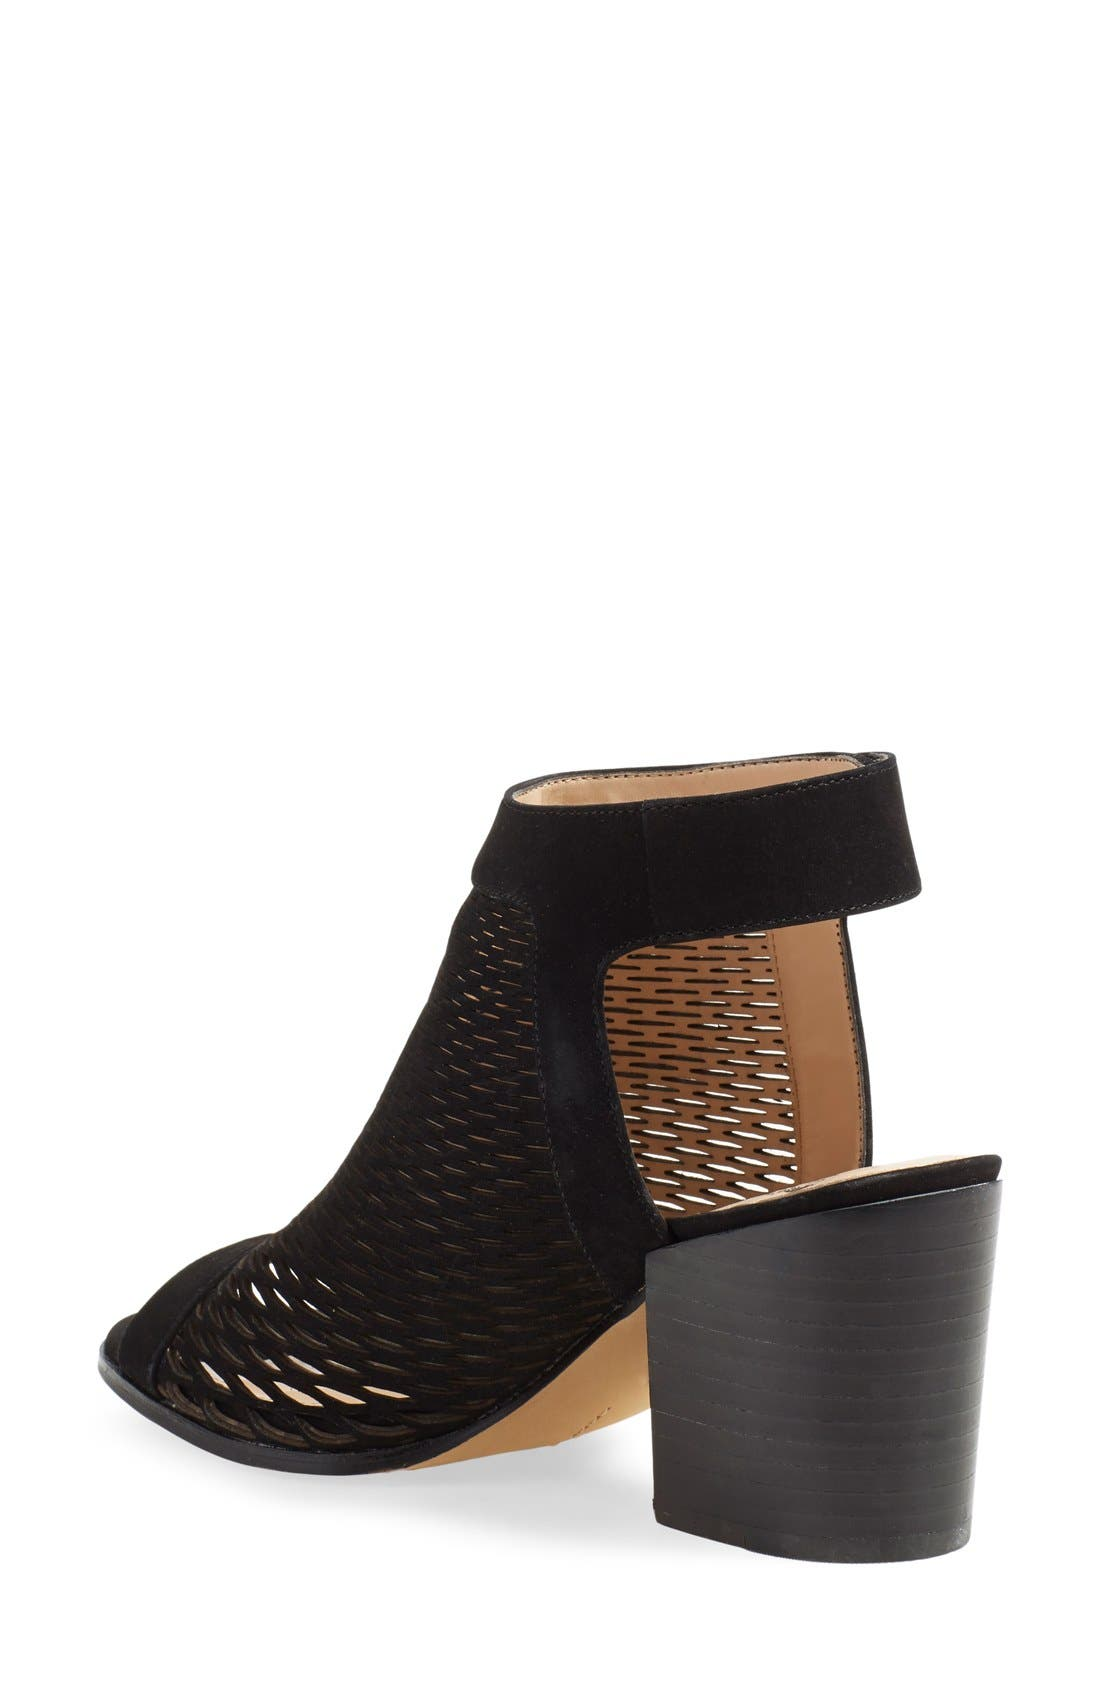 'Lavette' Perforated Peep Toe Bootie,                             Alternate thumbnail 3, color,                             001